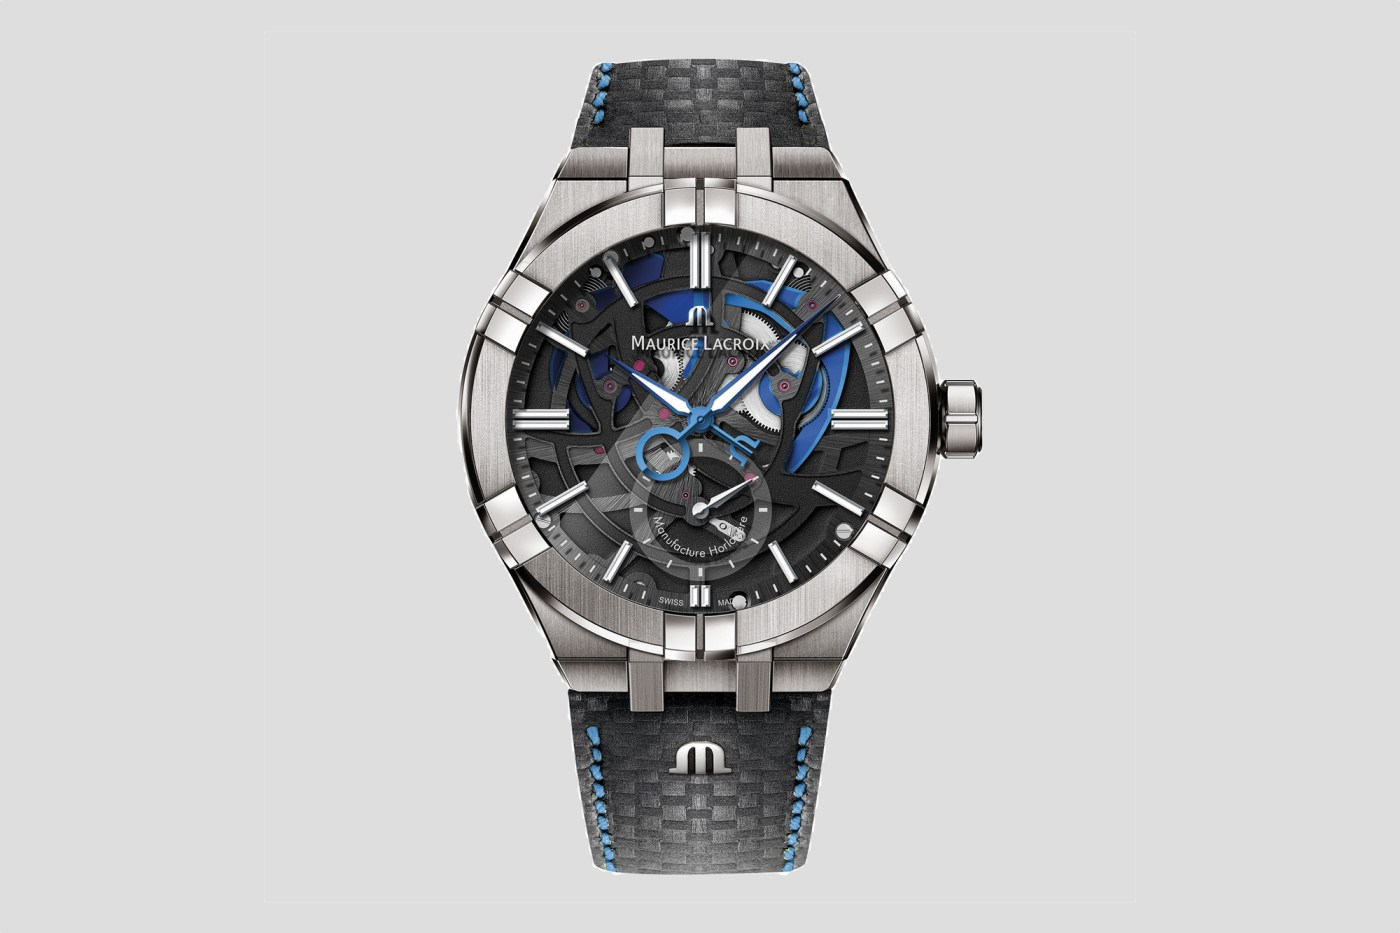 Maurice Lacroix Aikon Mercury Only Watch 2019